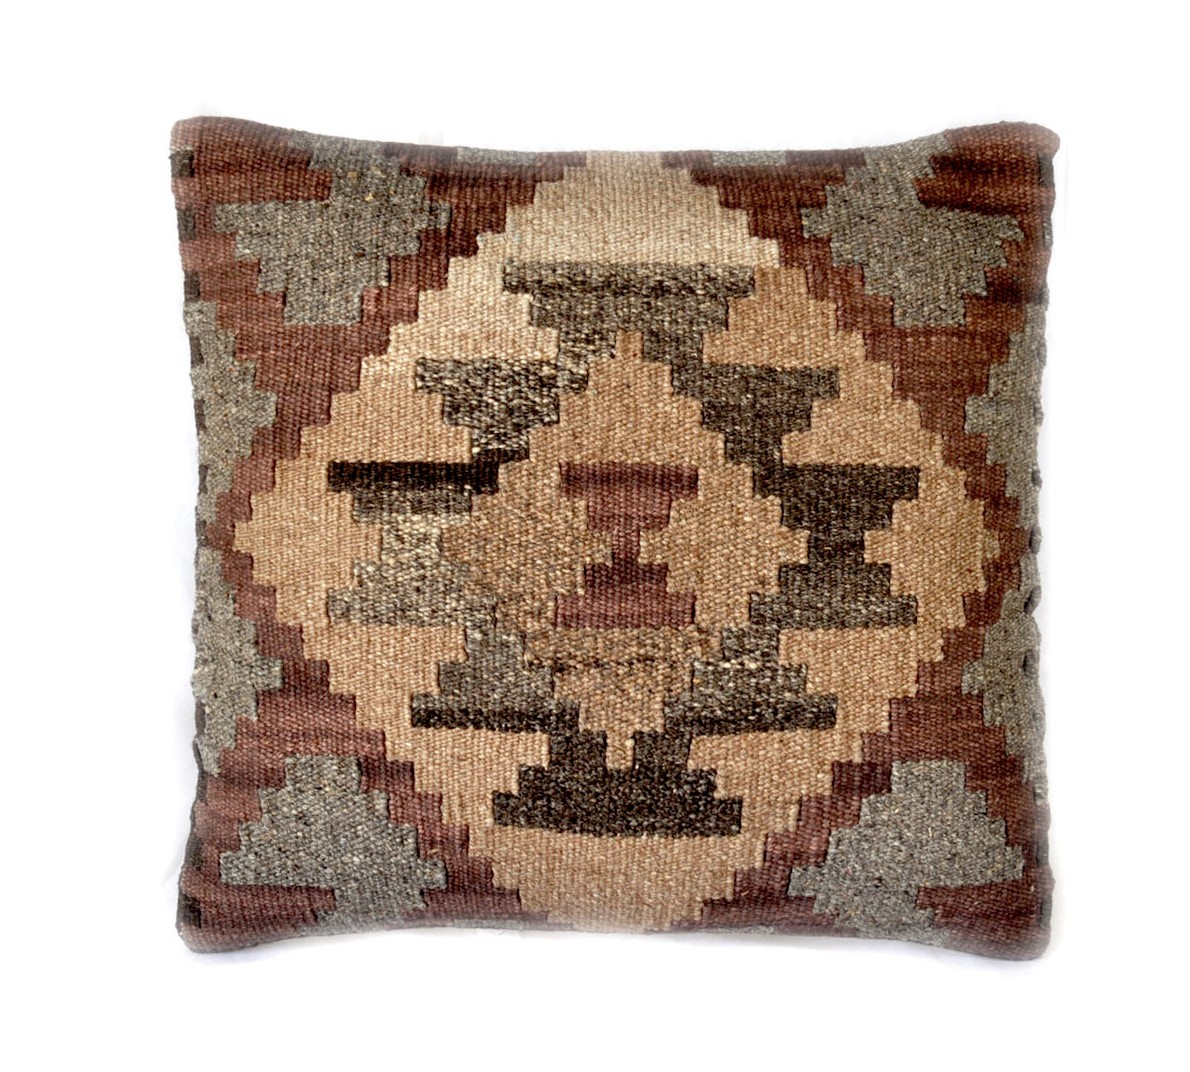 18×18 Hand-woven Wool Kilim Pillow Cover 12980993